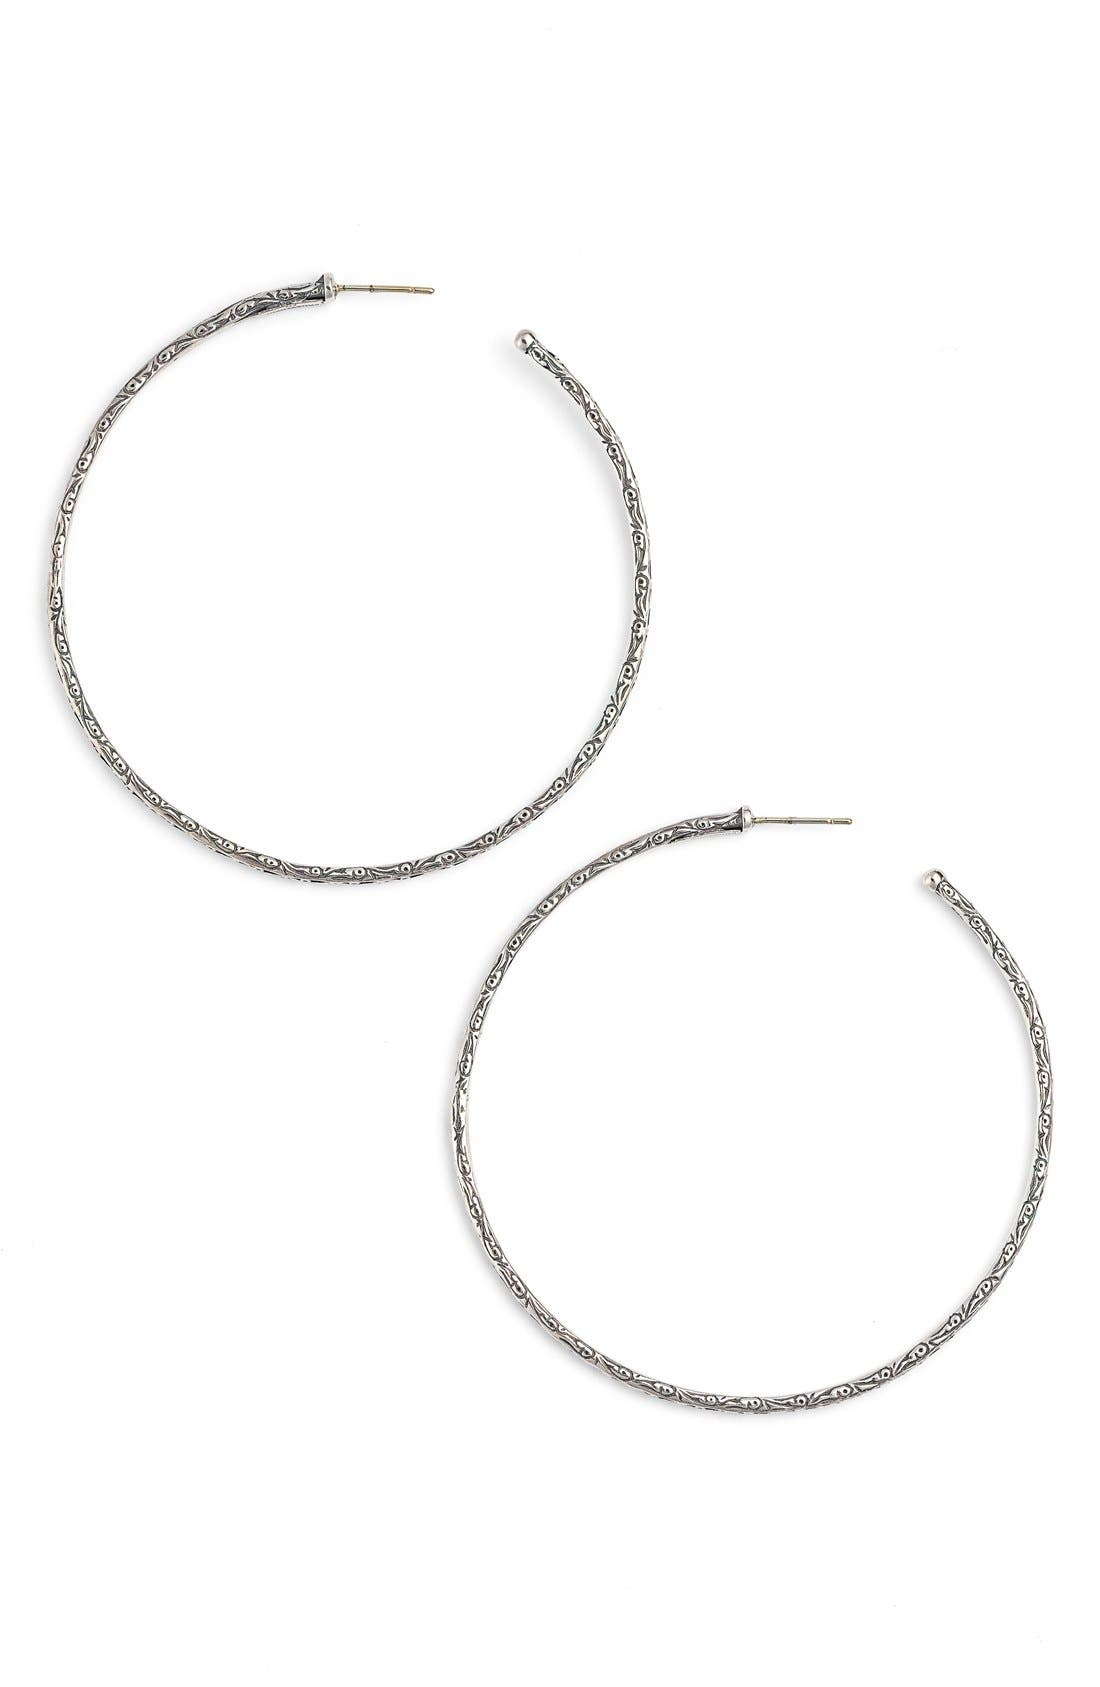 Konstantino 'Silver Classics' Large Etched Hoop Earrings